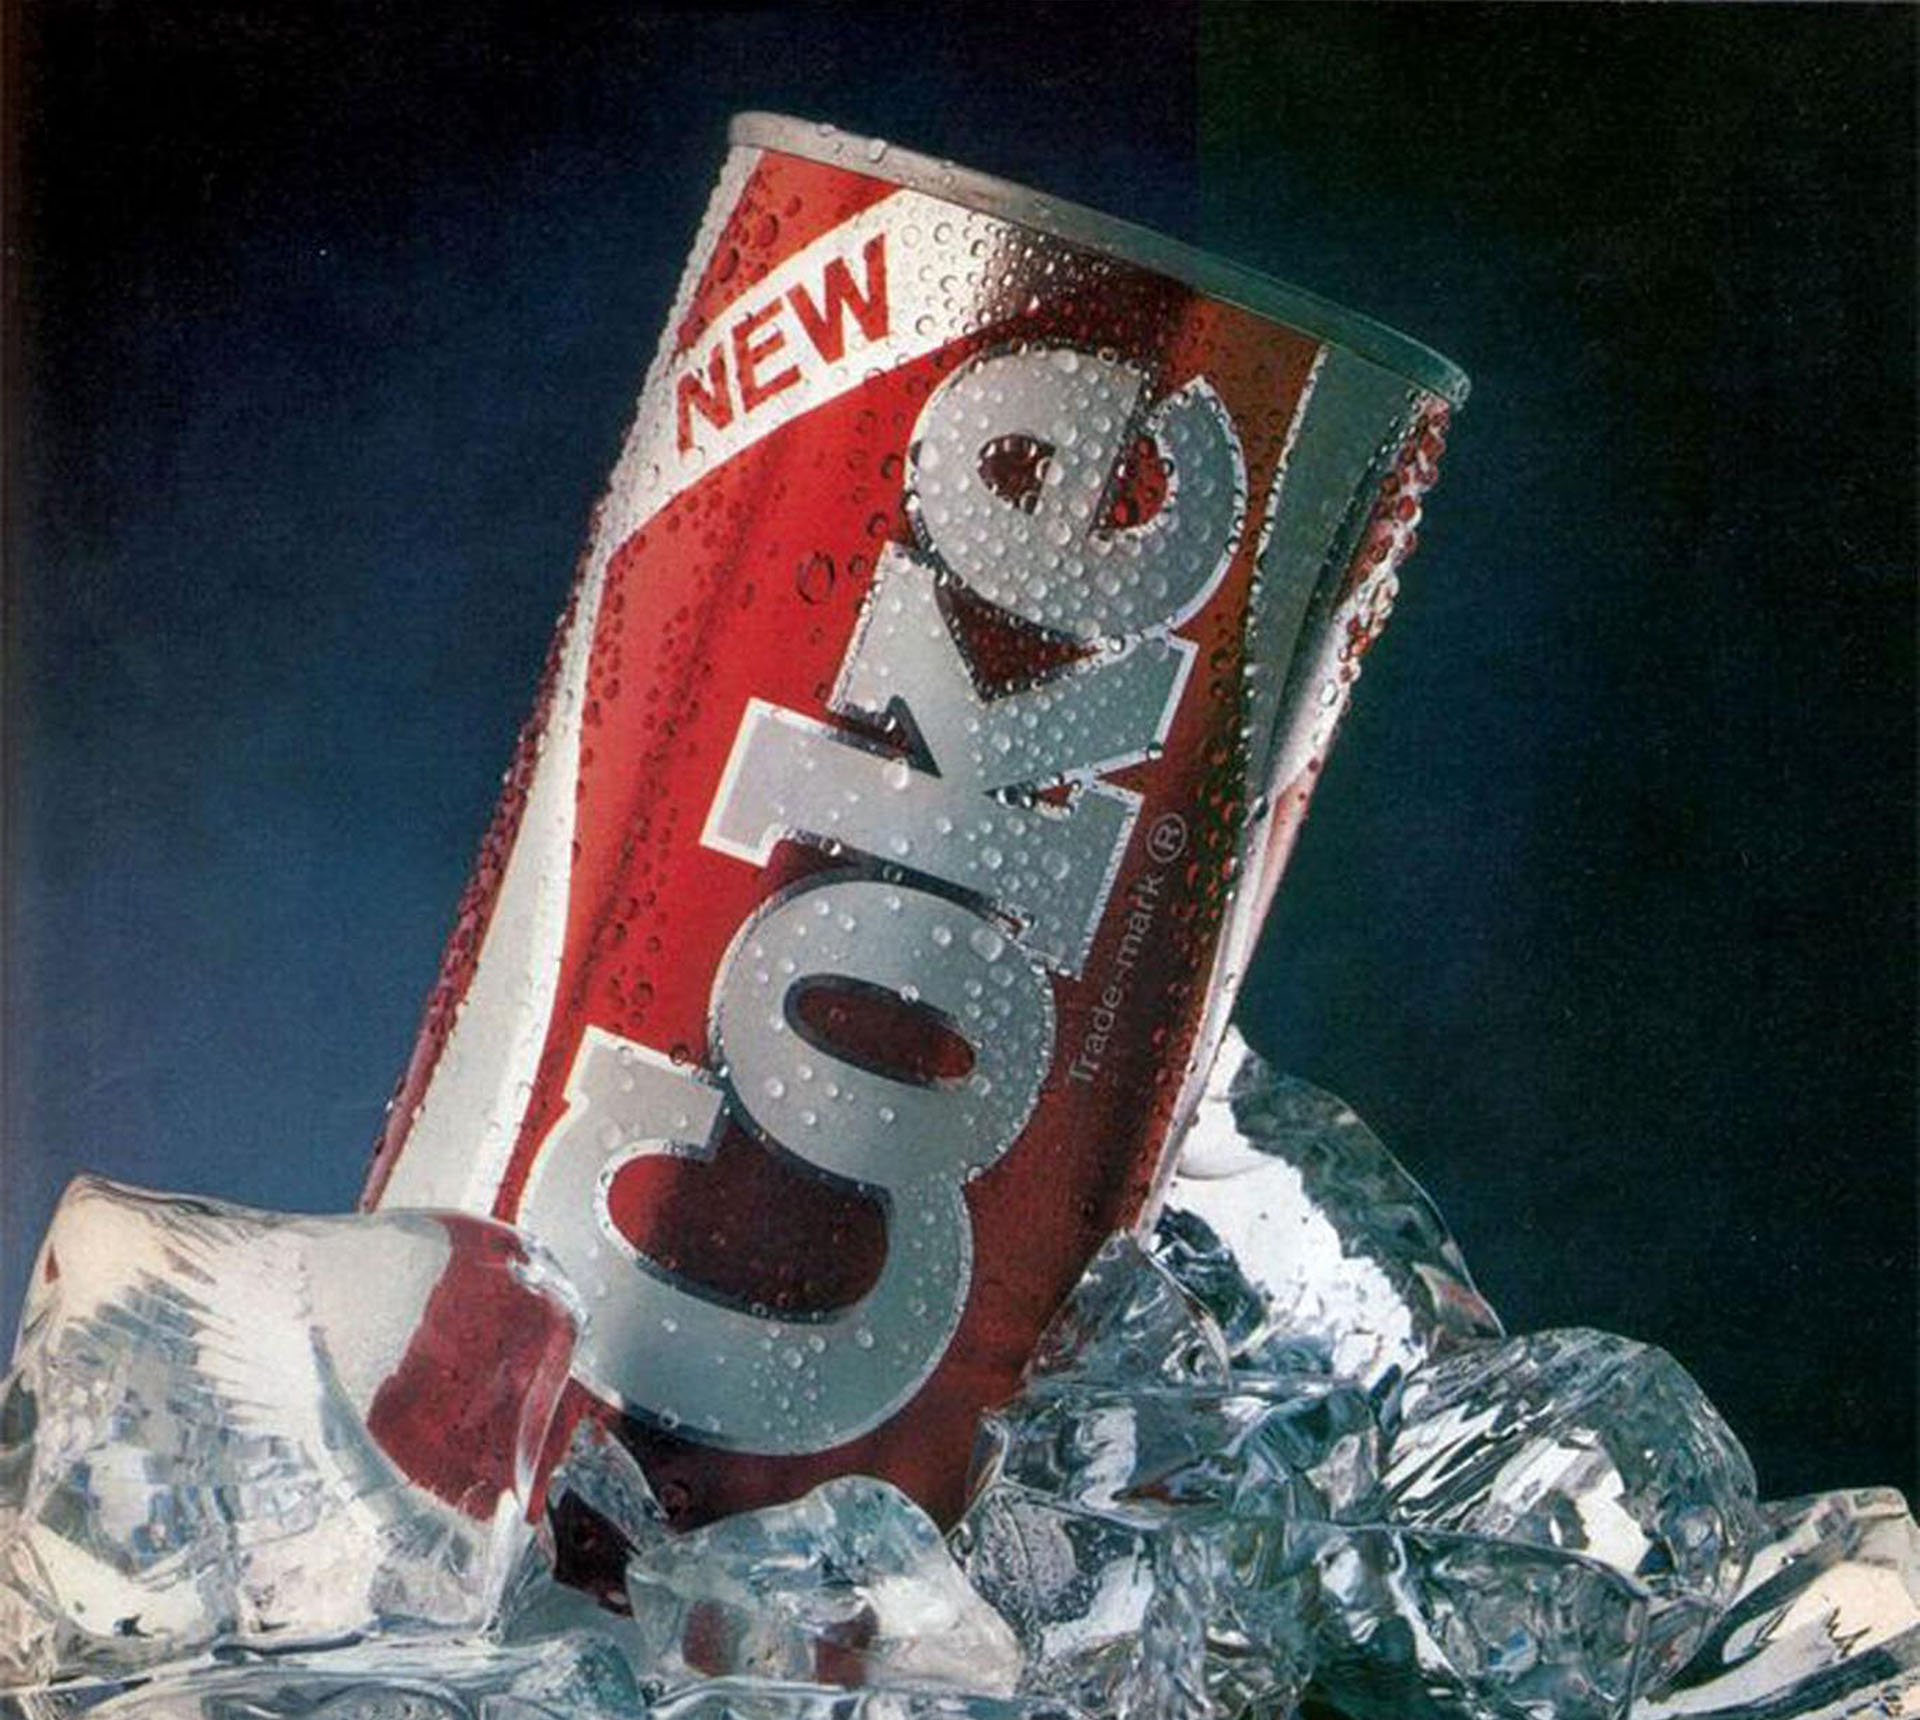 'New' Coke launched 23 years ago today